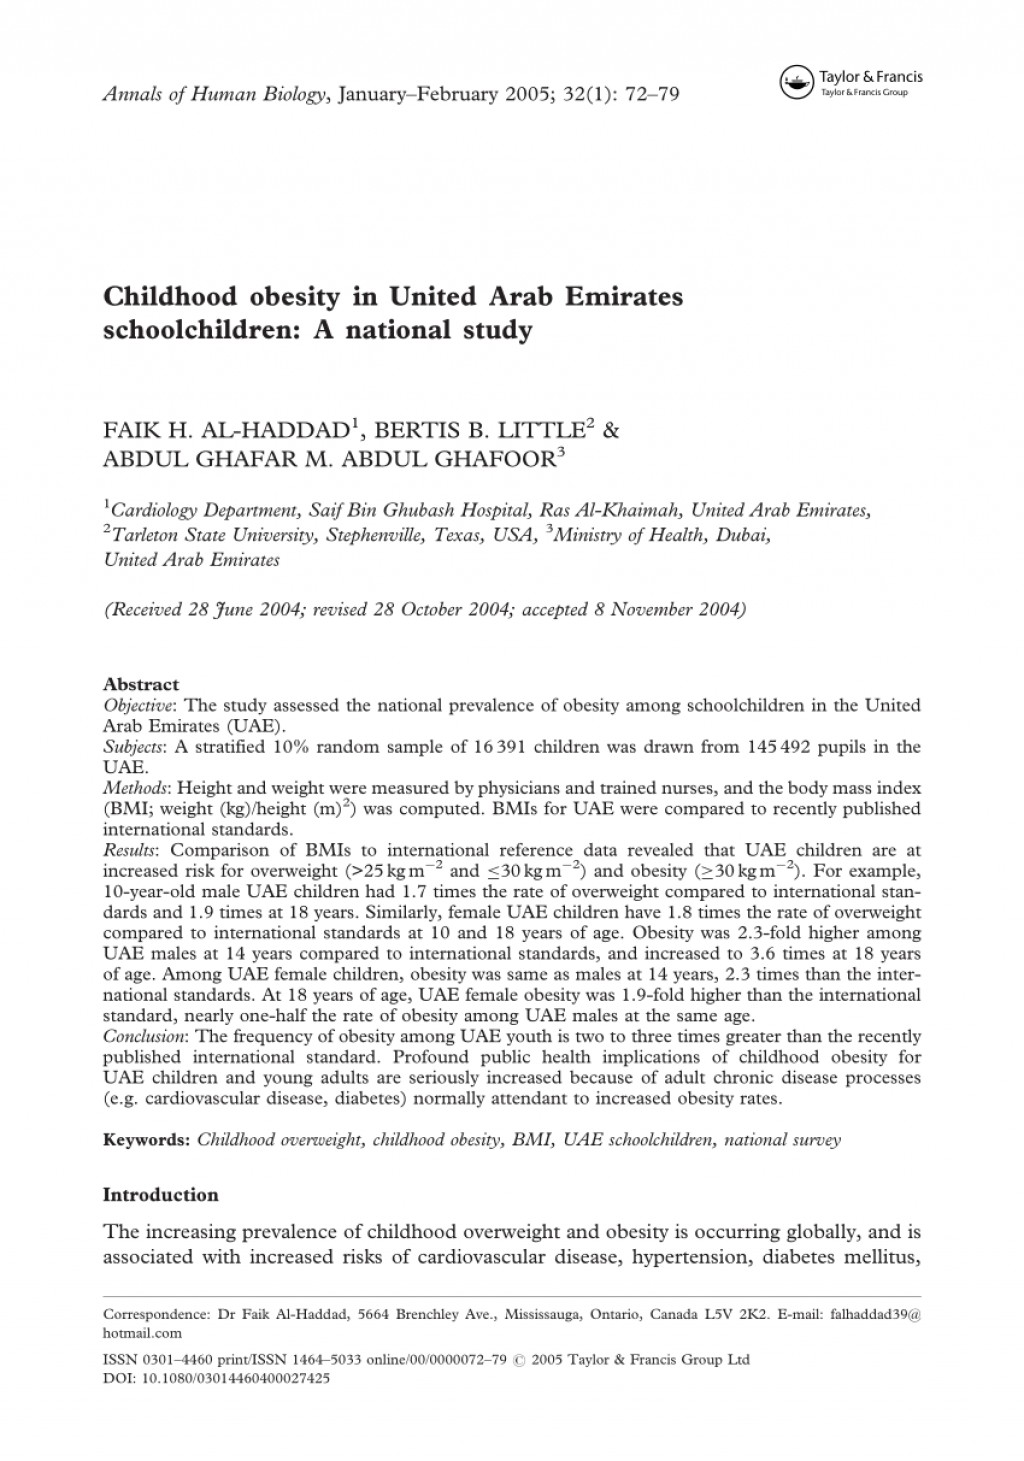 014 Childhood Obesity Research Paper Example Unique Large